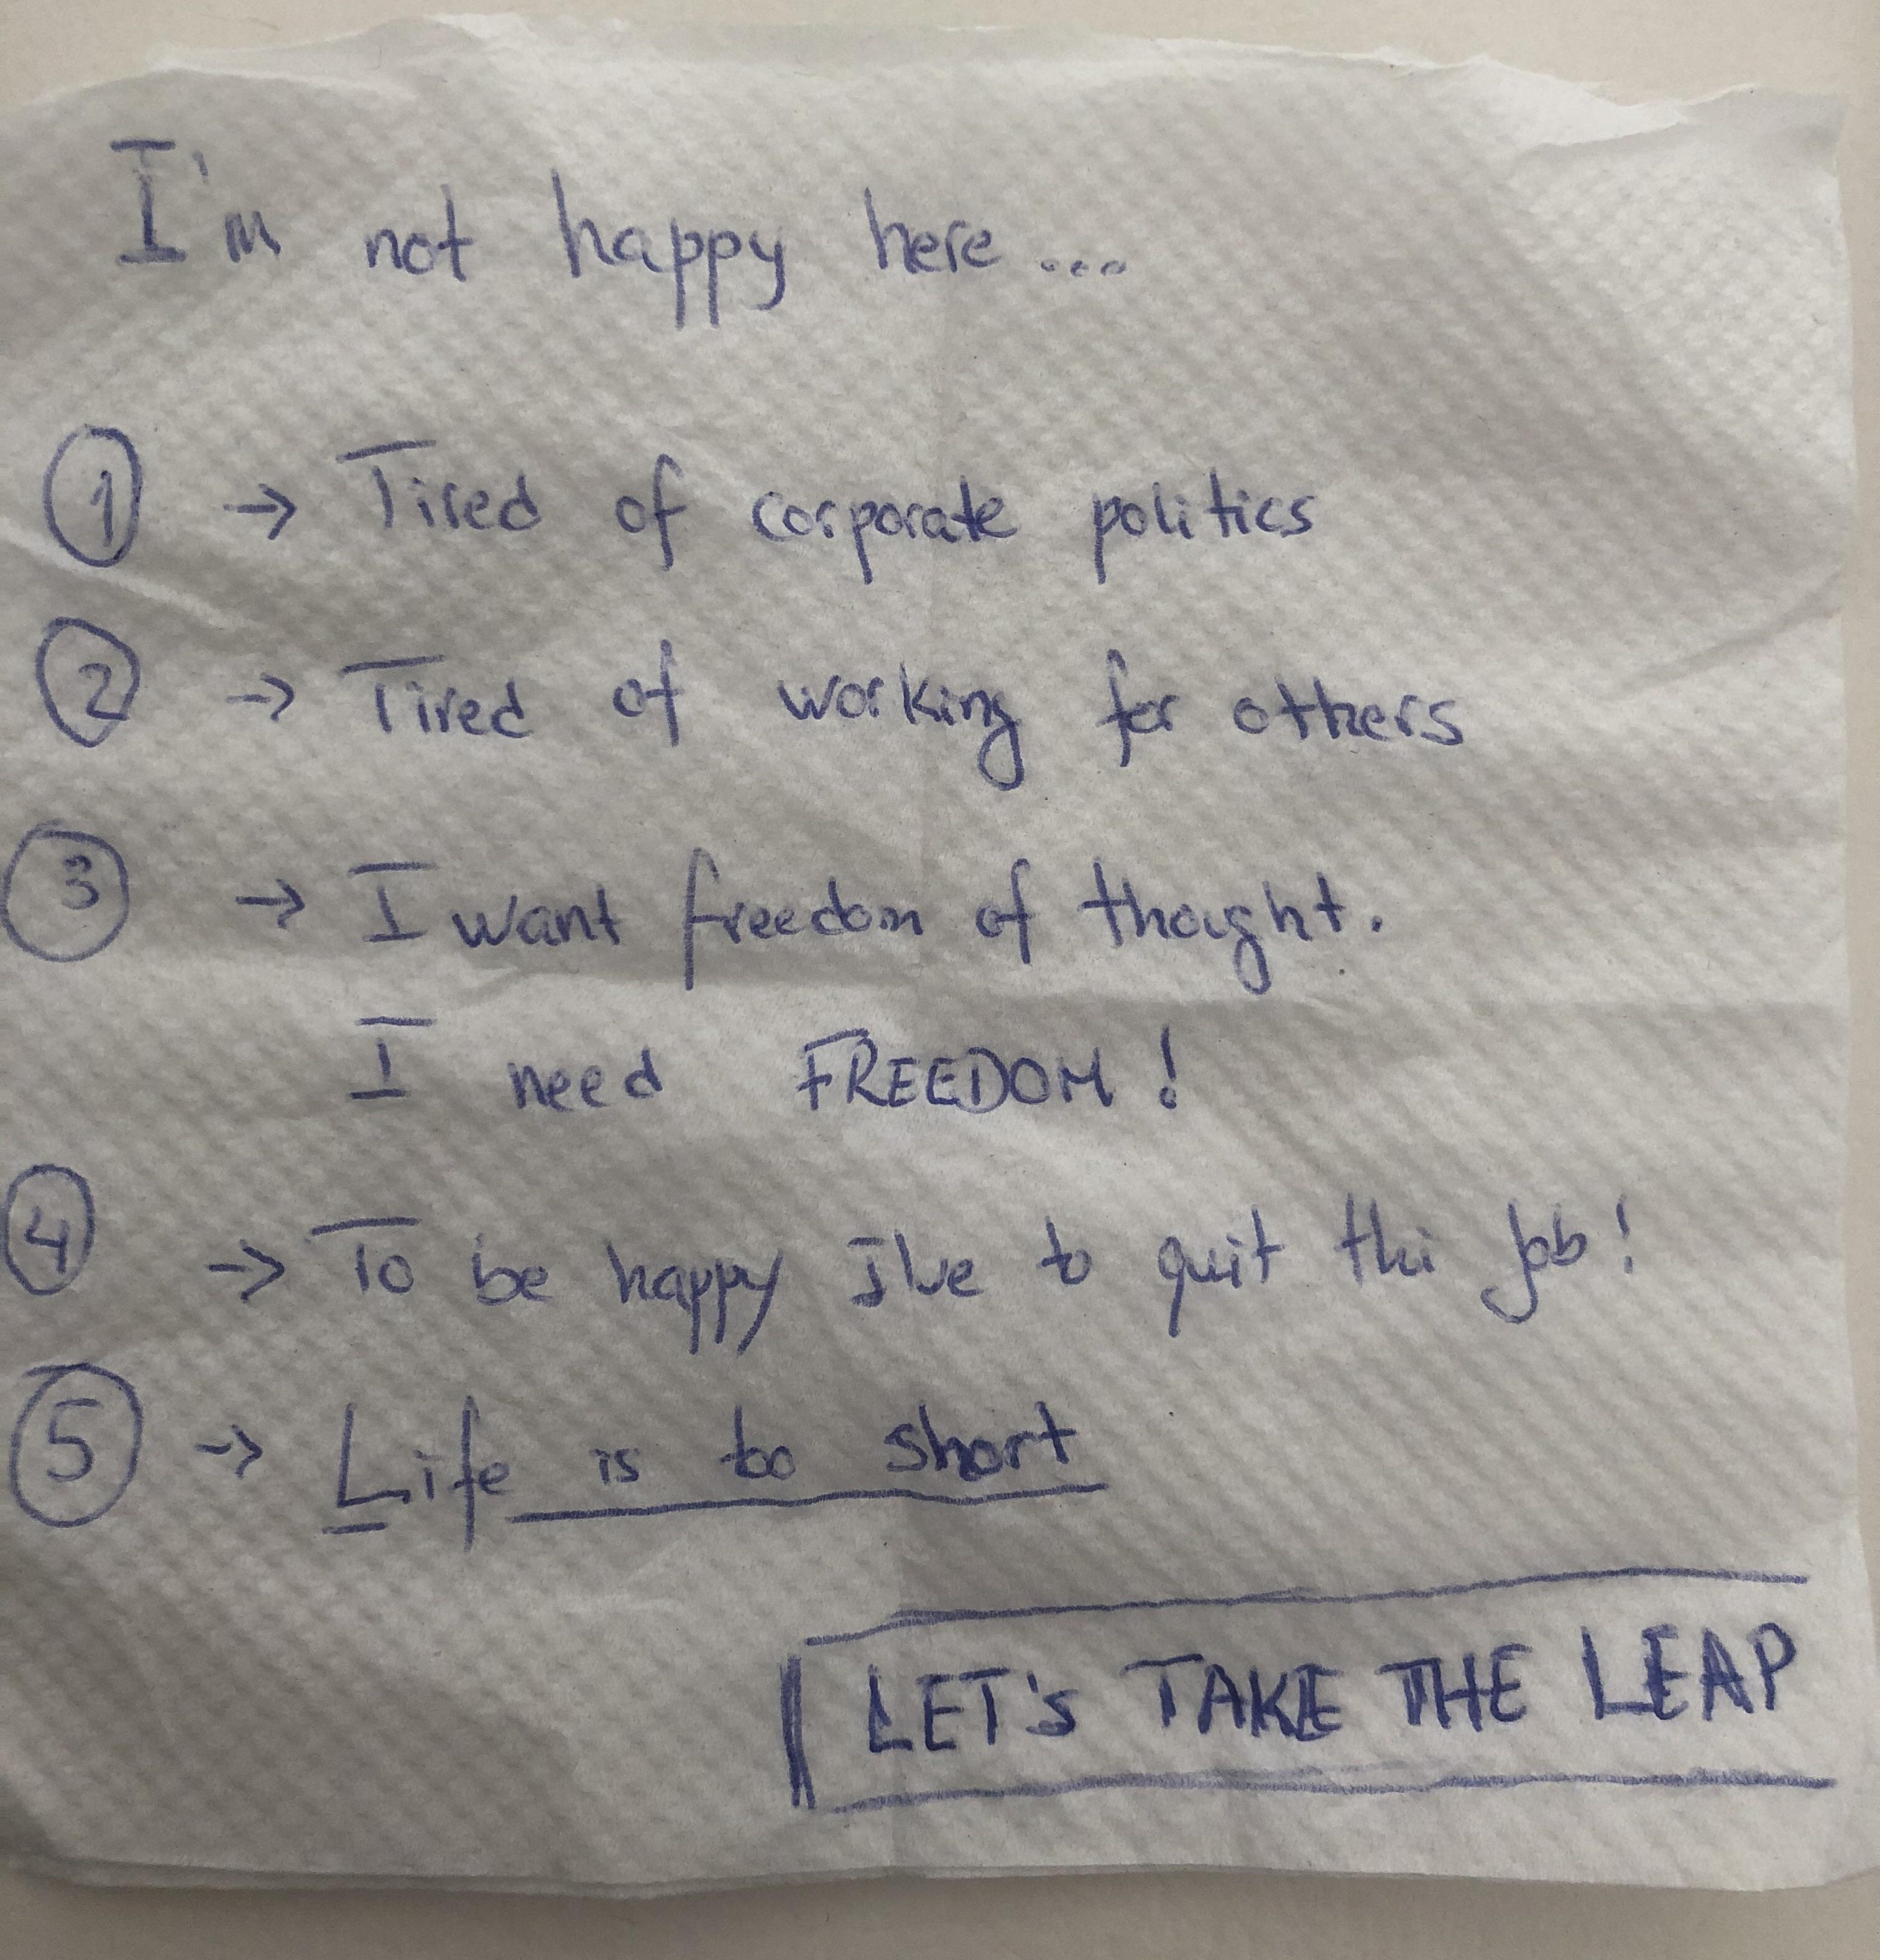 [Image] Take the leap. A note I've scribbled to myself during my last week at my corporate job. It was 2 years ago (I keep it as a reminder that it's possible to take the leap).